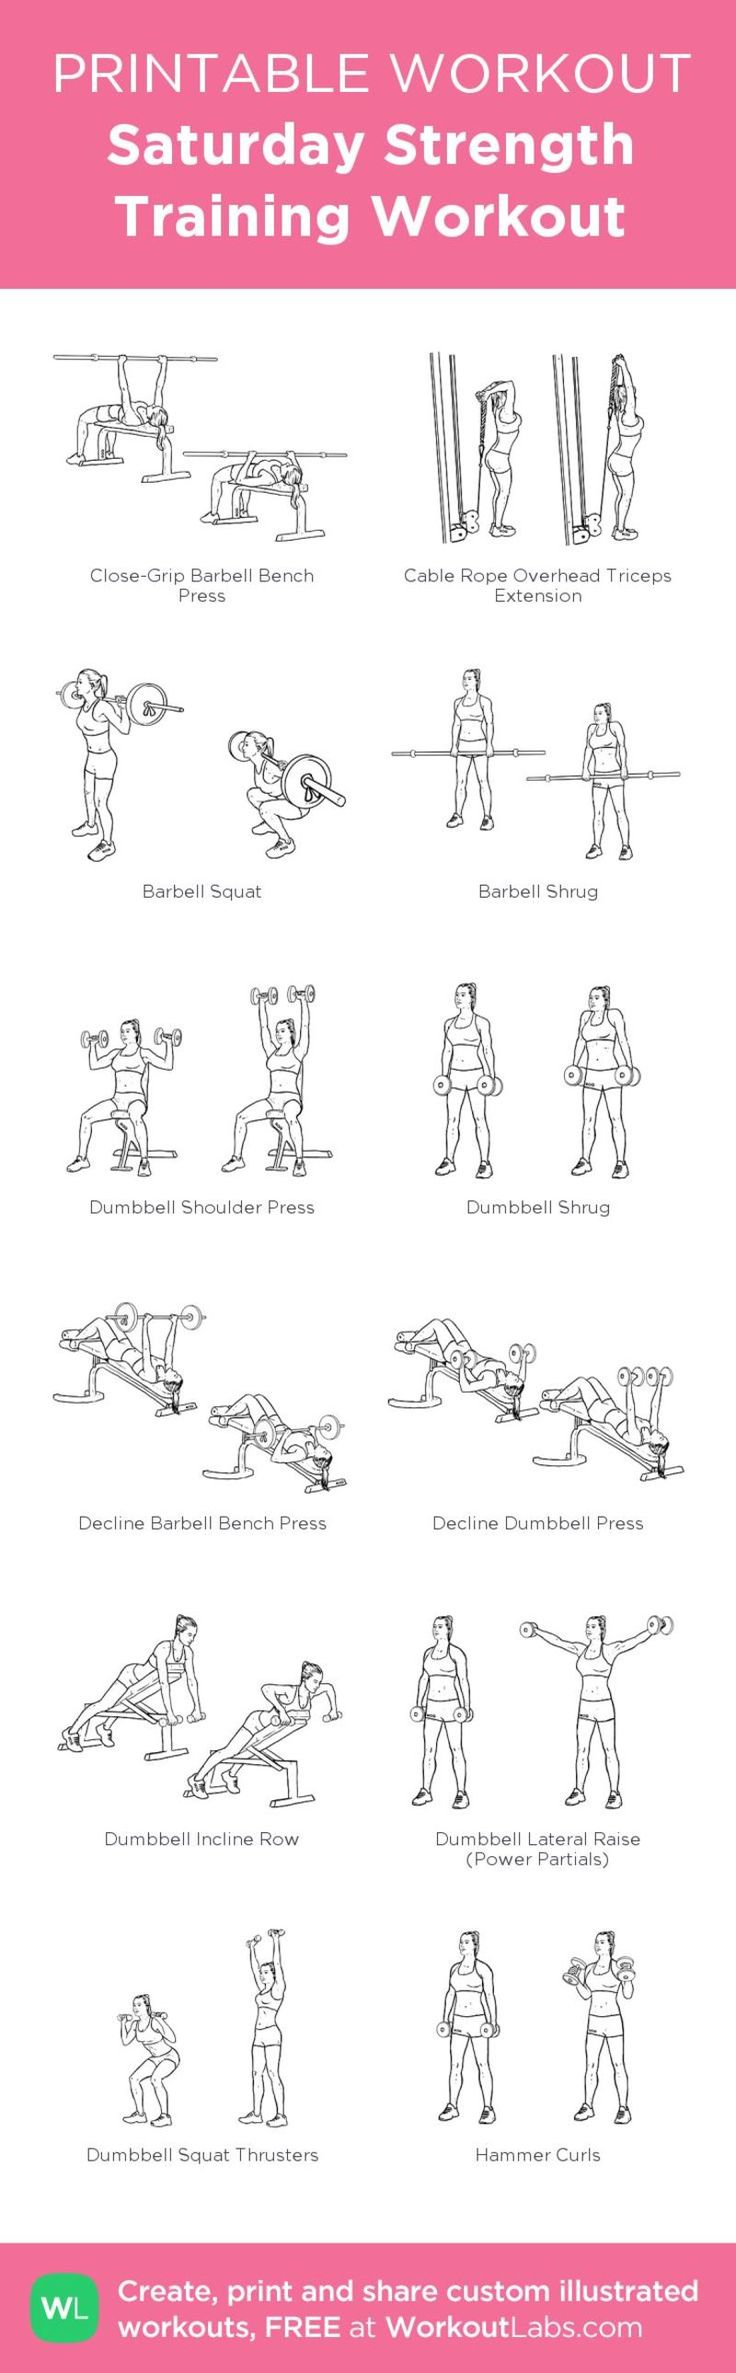 Saturday Strength Training Workout: my custom printable workout by @WorkoutLabs #workoutlabs #customworkout